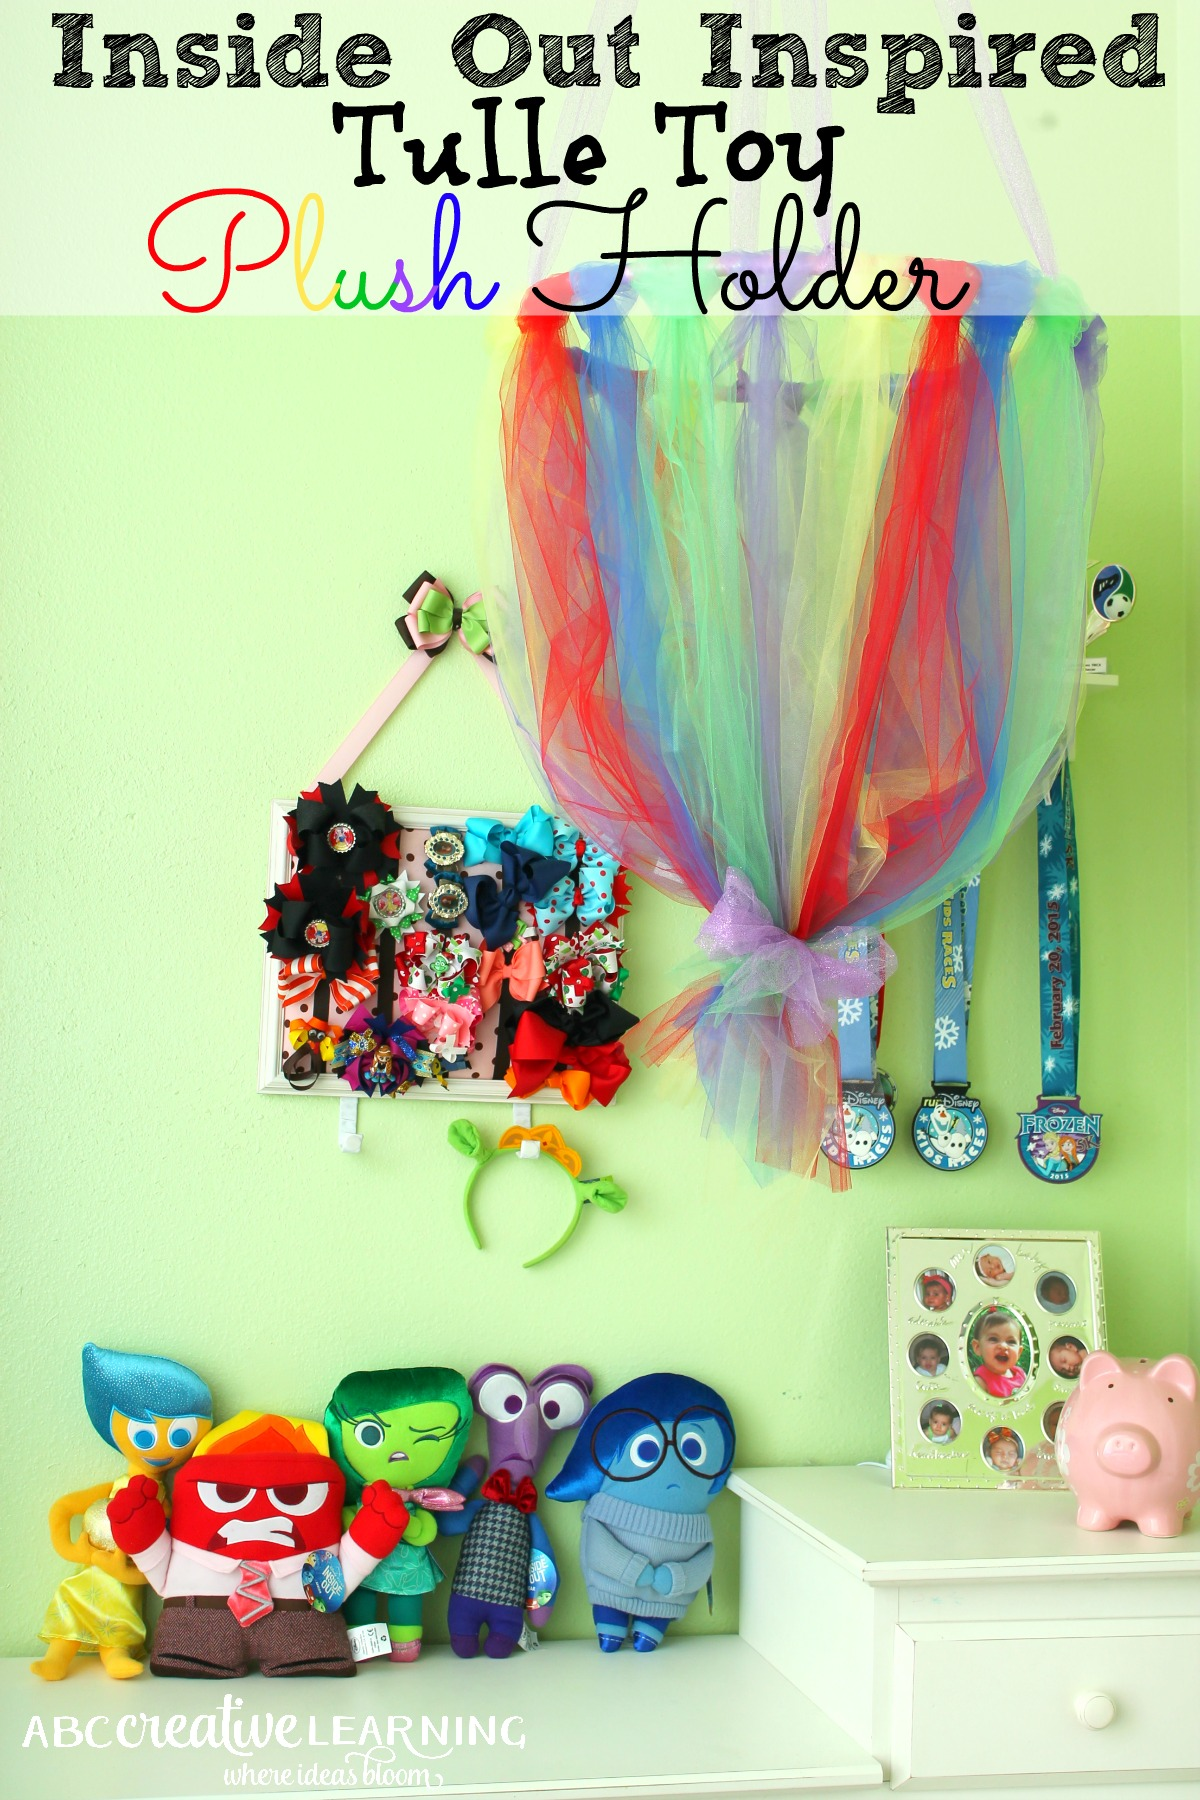 Inside Out Inspired Tulle Toy Plush Holder